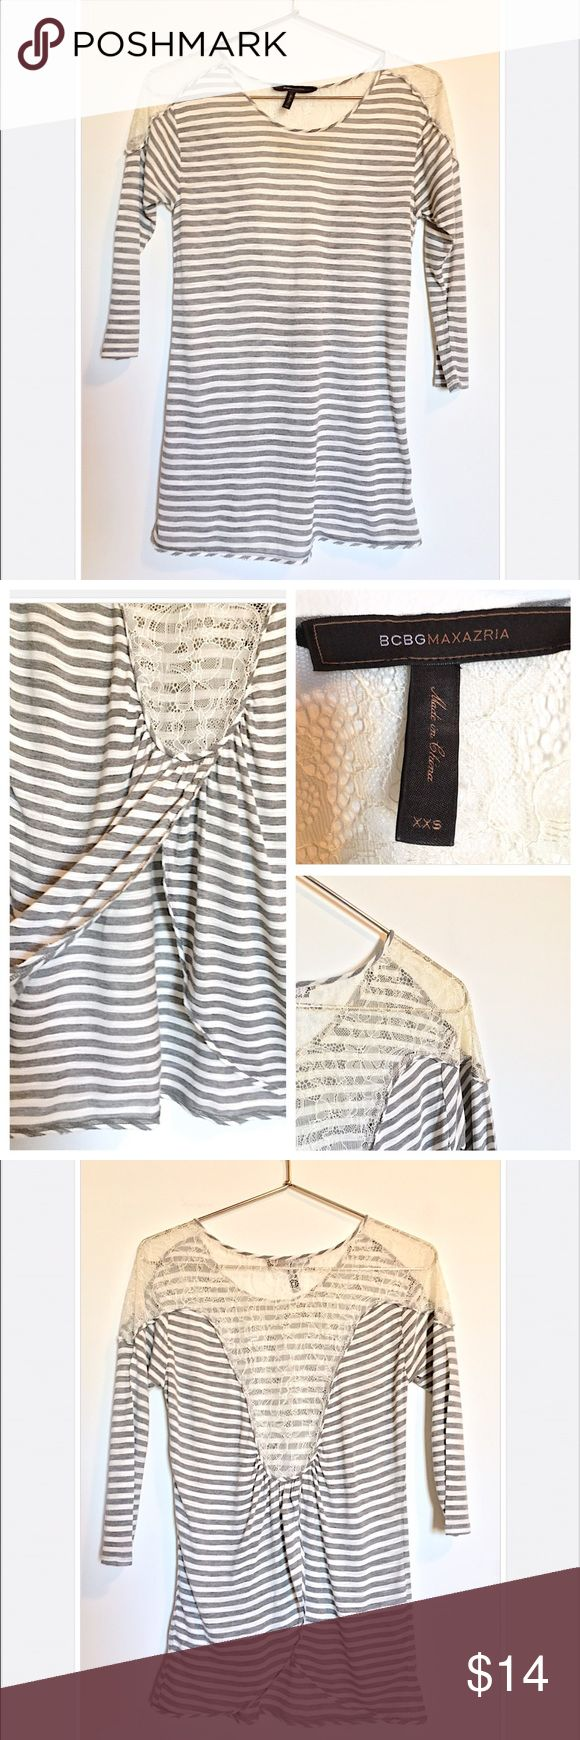 "BCBGMaxAzria Stripe + Lace 3/4"" Sleeve Top BCBGMaxAzria Gray + White Stripe Top//Lace + Open Back Detail//3/4"" Sleeve//Size XXS//In Great Condition + Only Worn Once👍🏻//Let me know if you need add'l info or pics! BCBGMaxAzria Tops Blouses"